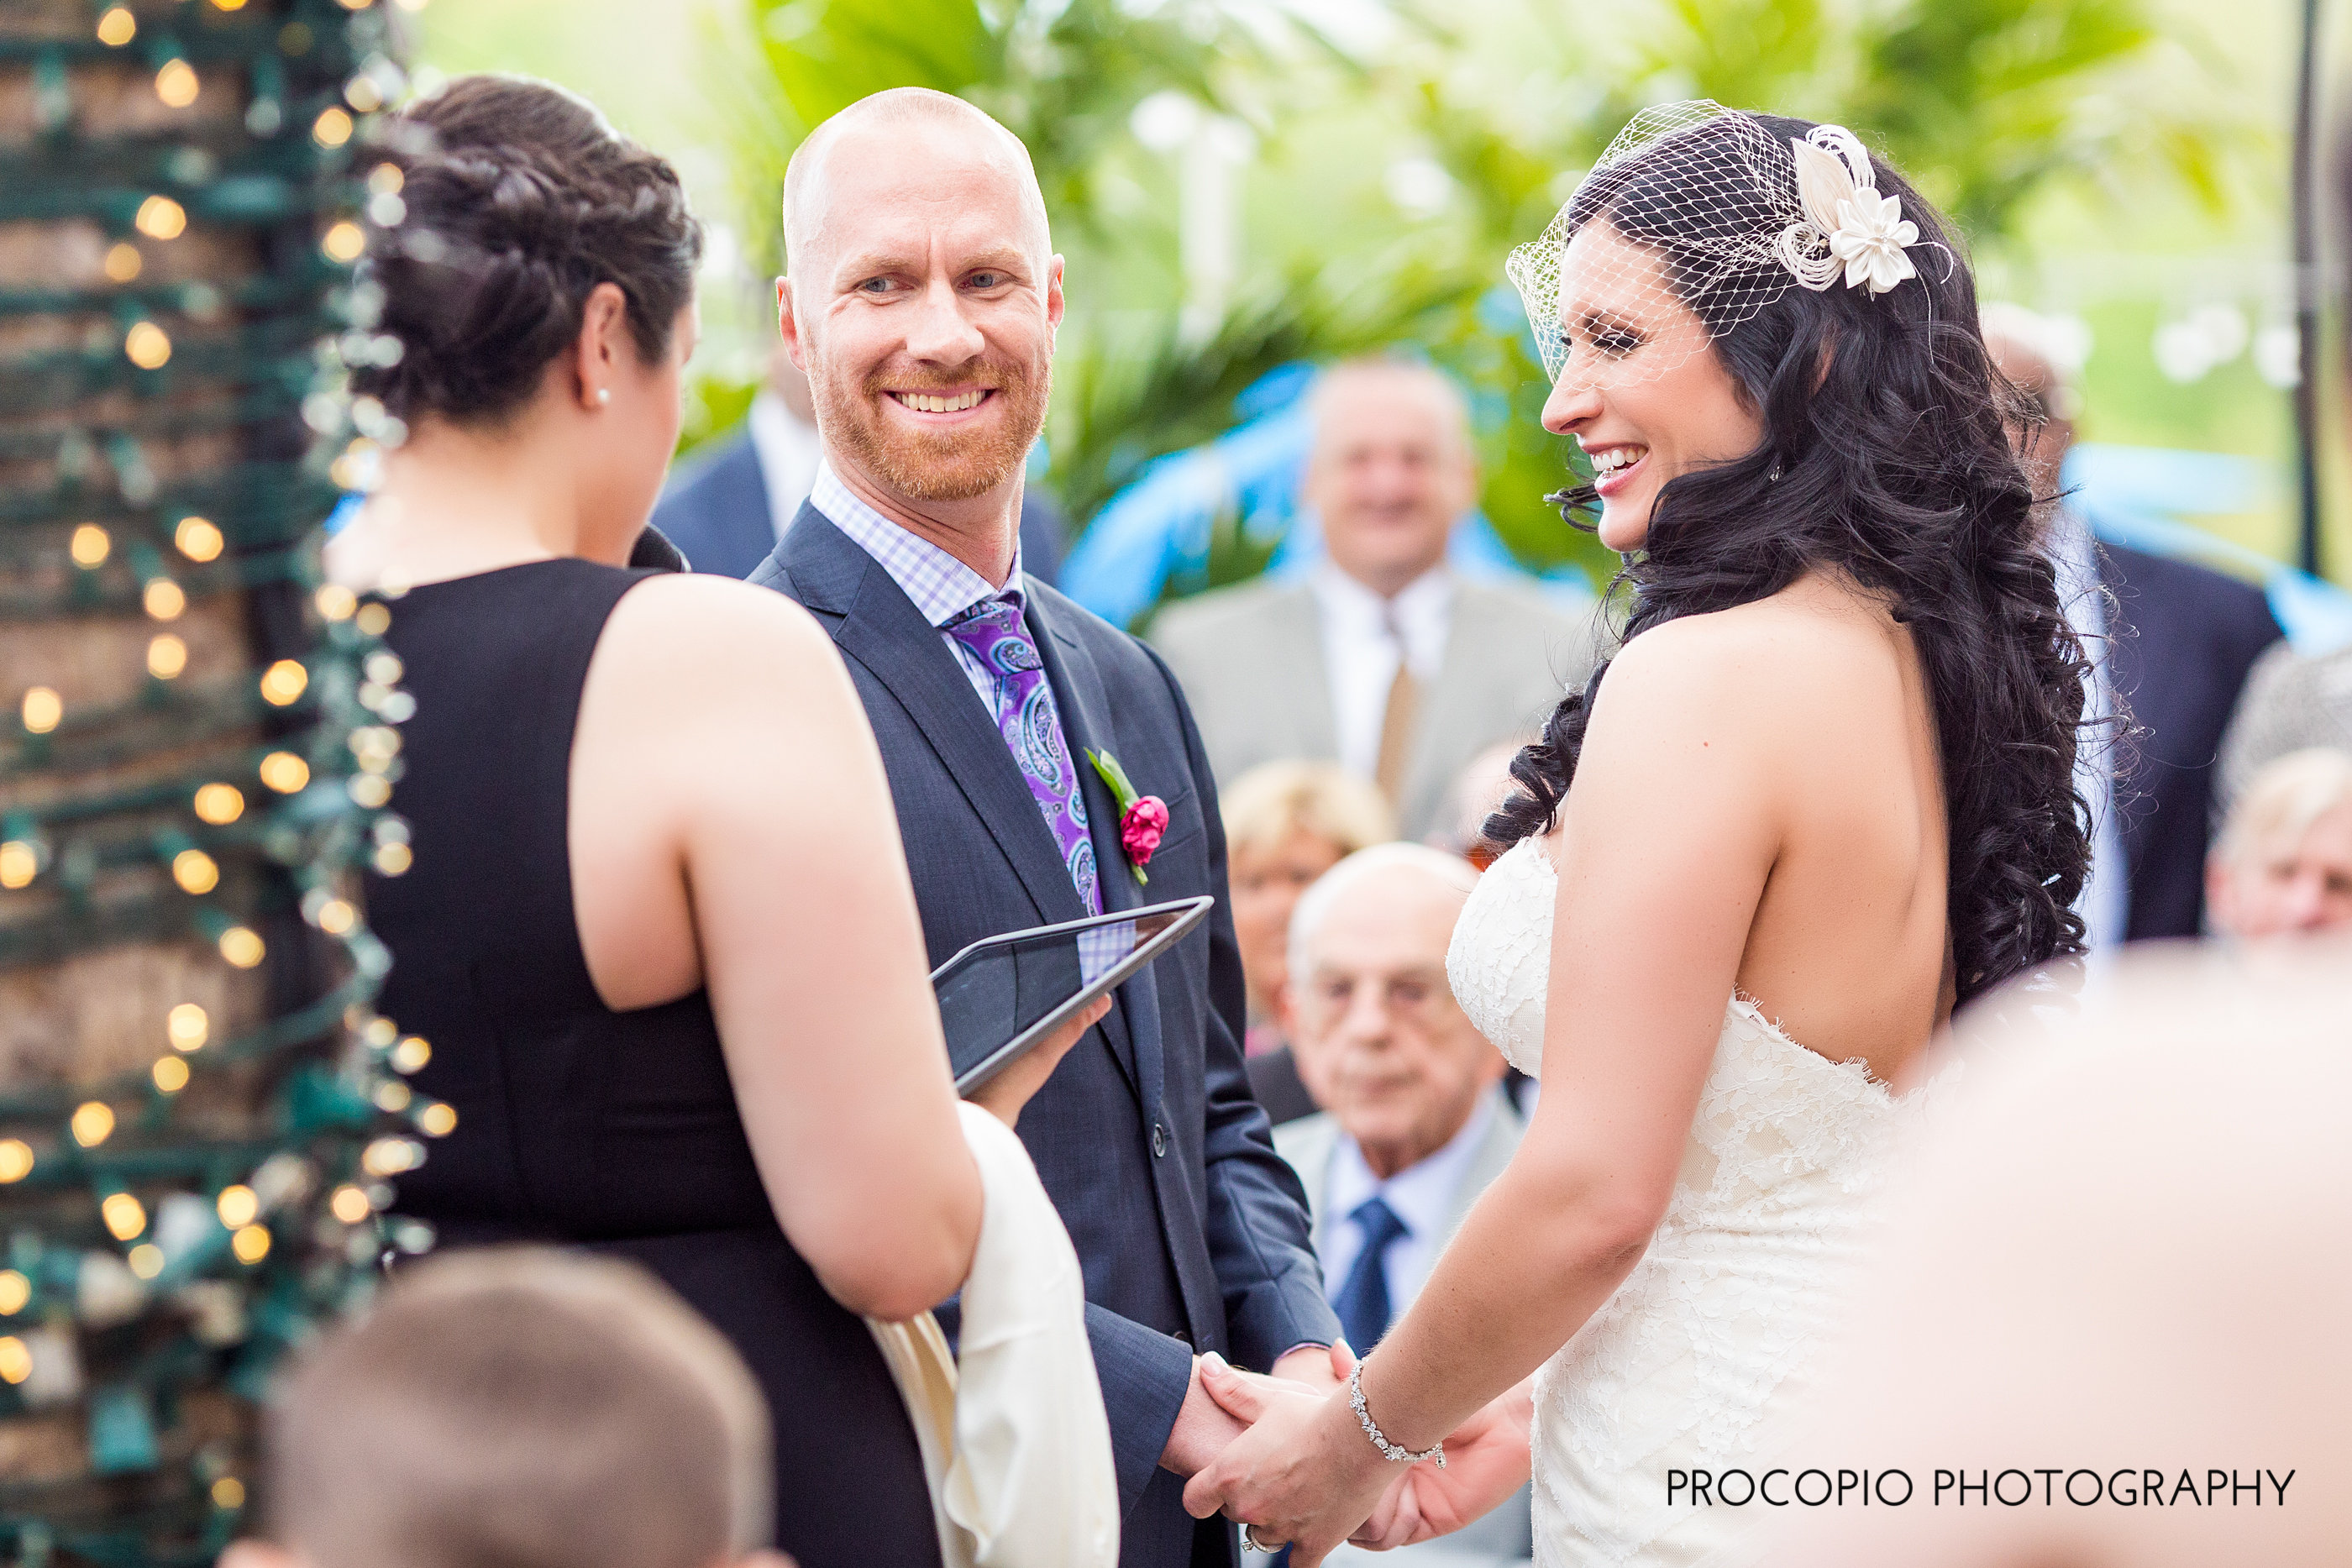 Wedding Rehearsal Planning, DC Wedding Planner Bright Occasions, Photography by Procopio Photography